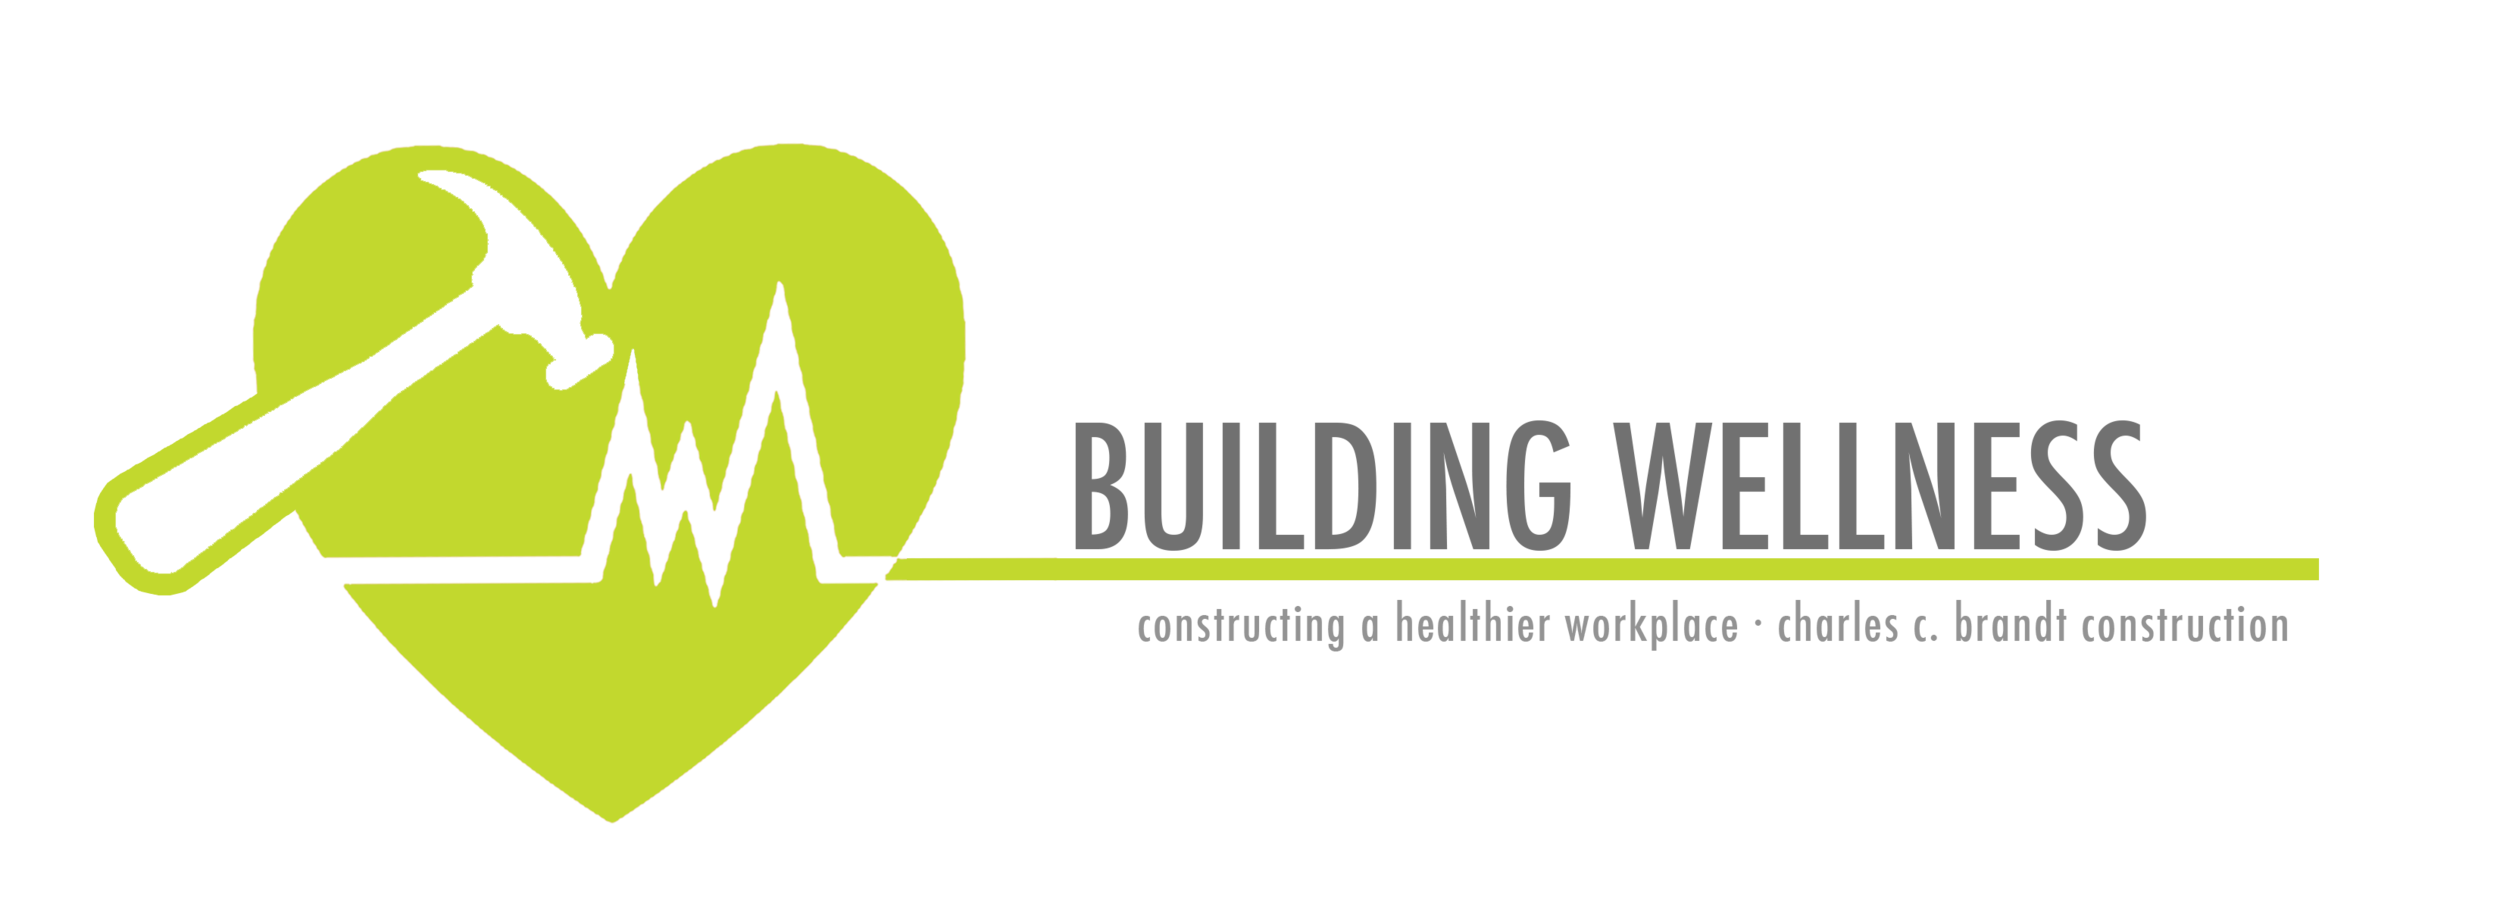 Building Wellness Full Logo LONG.png